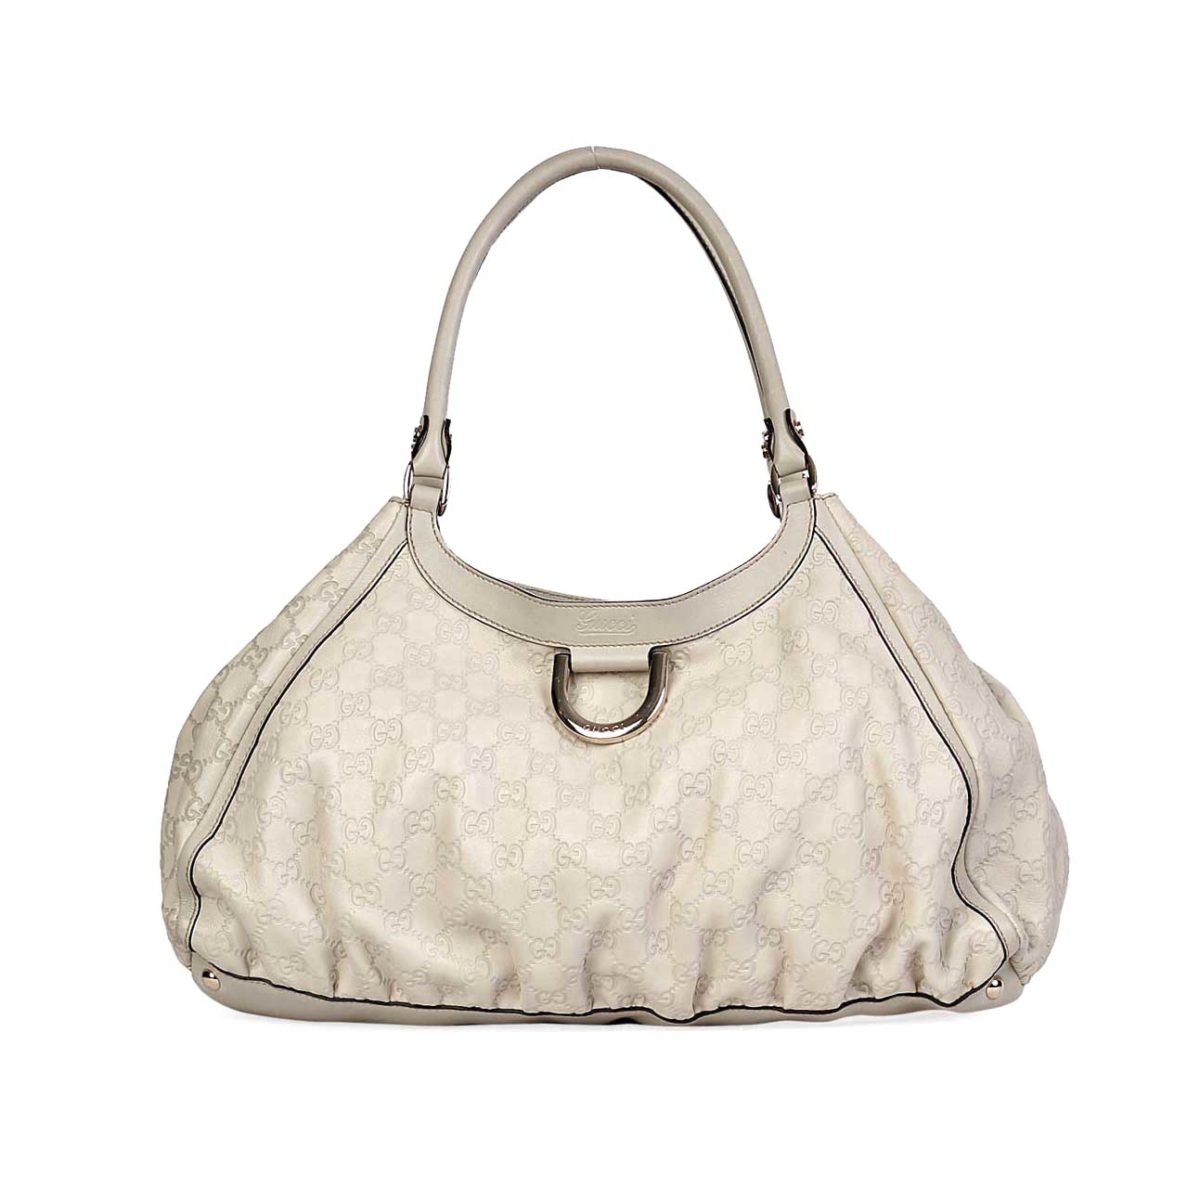 3568df510a64 GUCCI Guccissima Large D Gold Shoulder Bag Ivory | Luxity